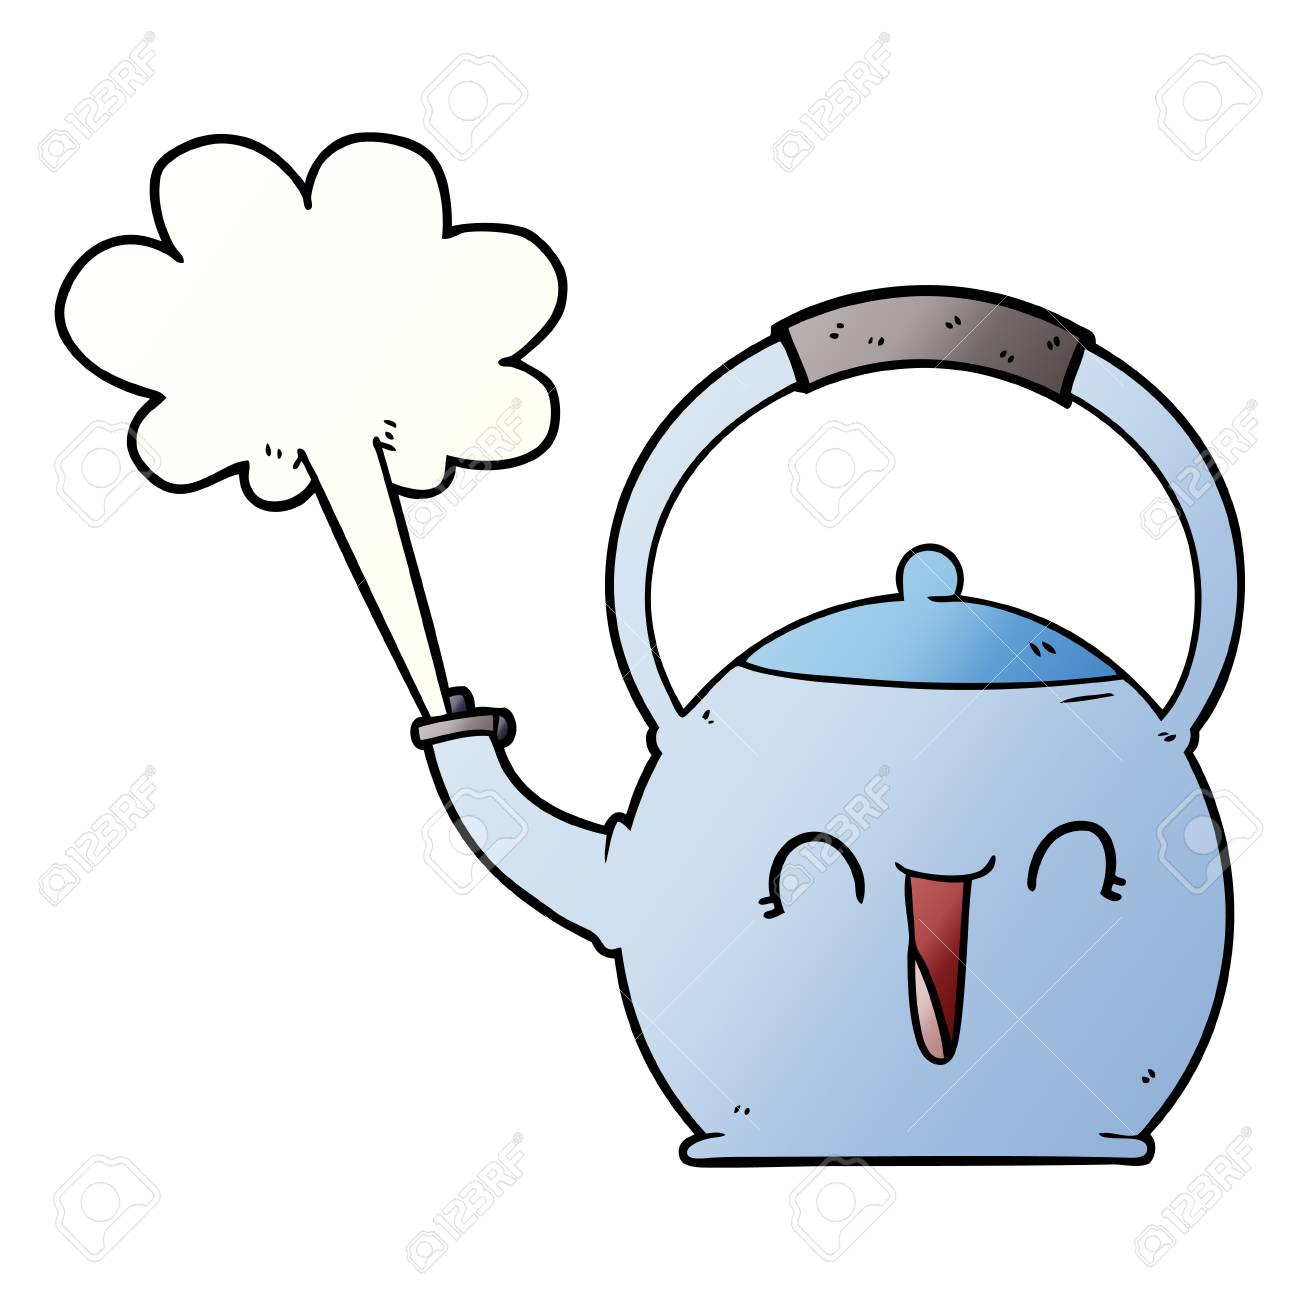 Cartoon boiling kettle.